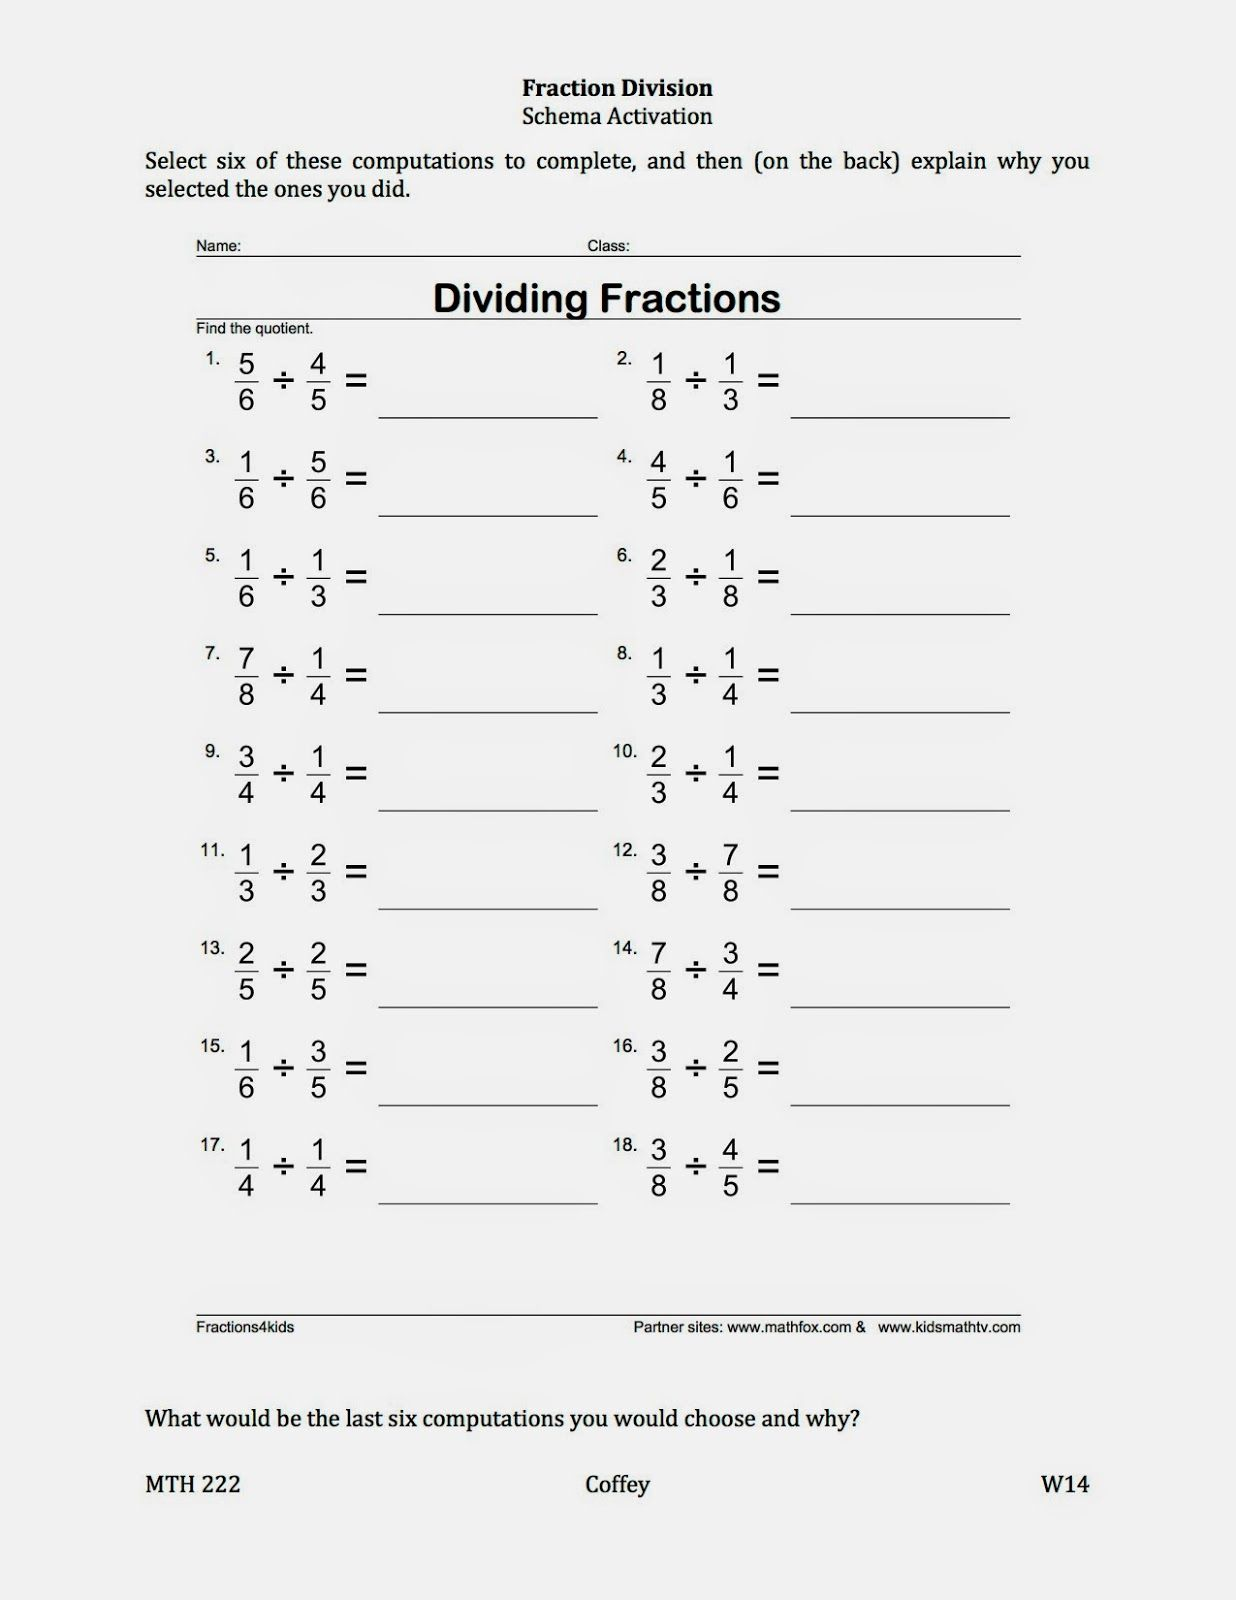 Do You Have A Boring Worksheet That You Want To Make More